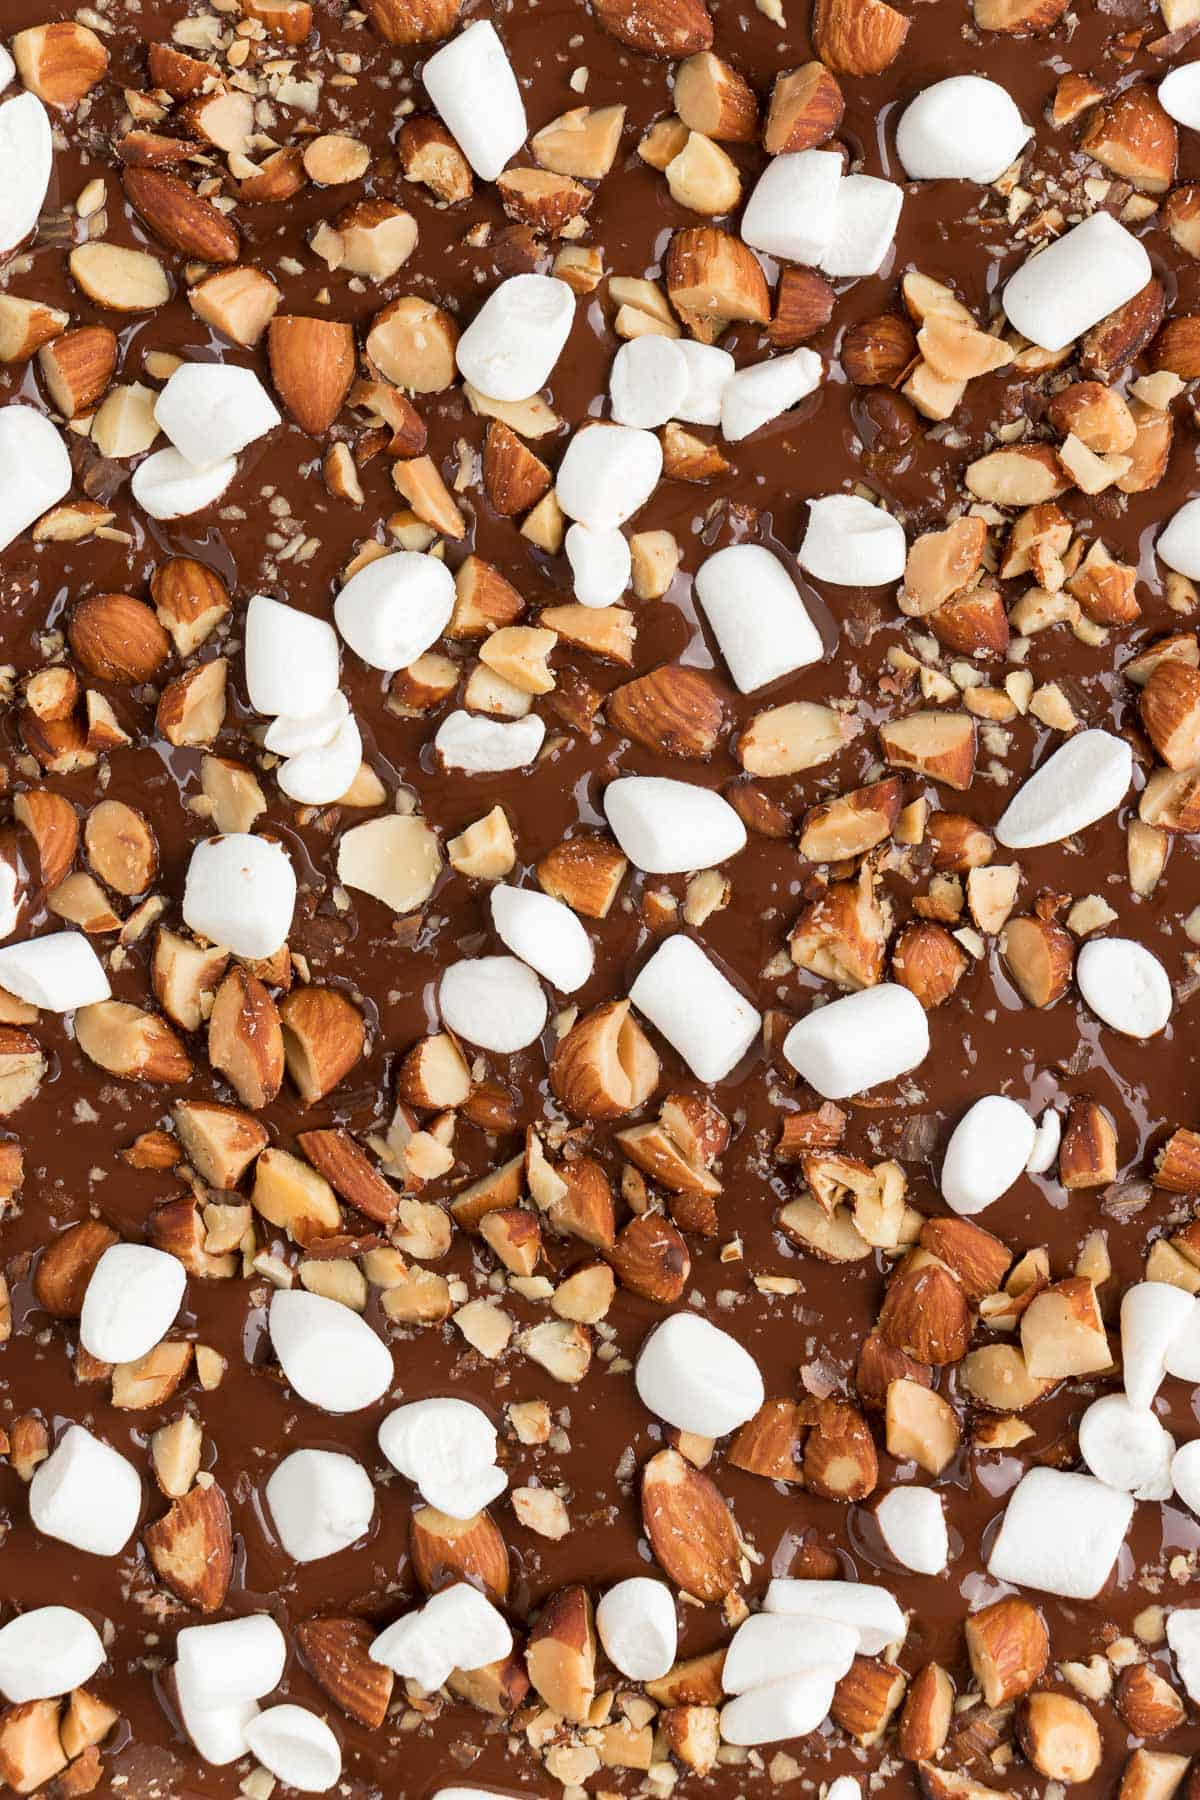 melted chocolate topped with mini marshmallows and chopped roasted almonds